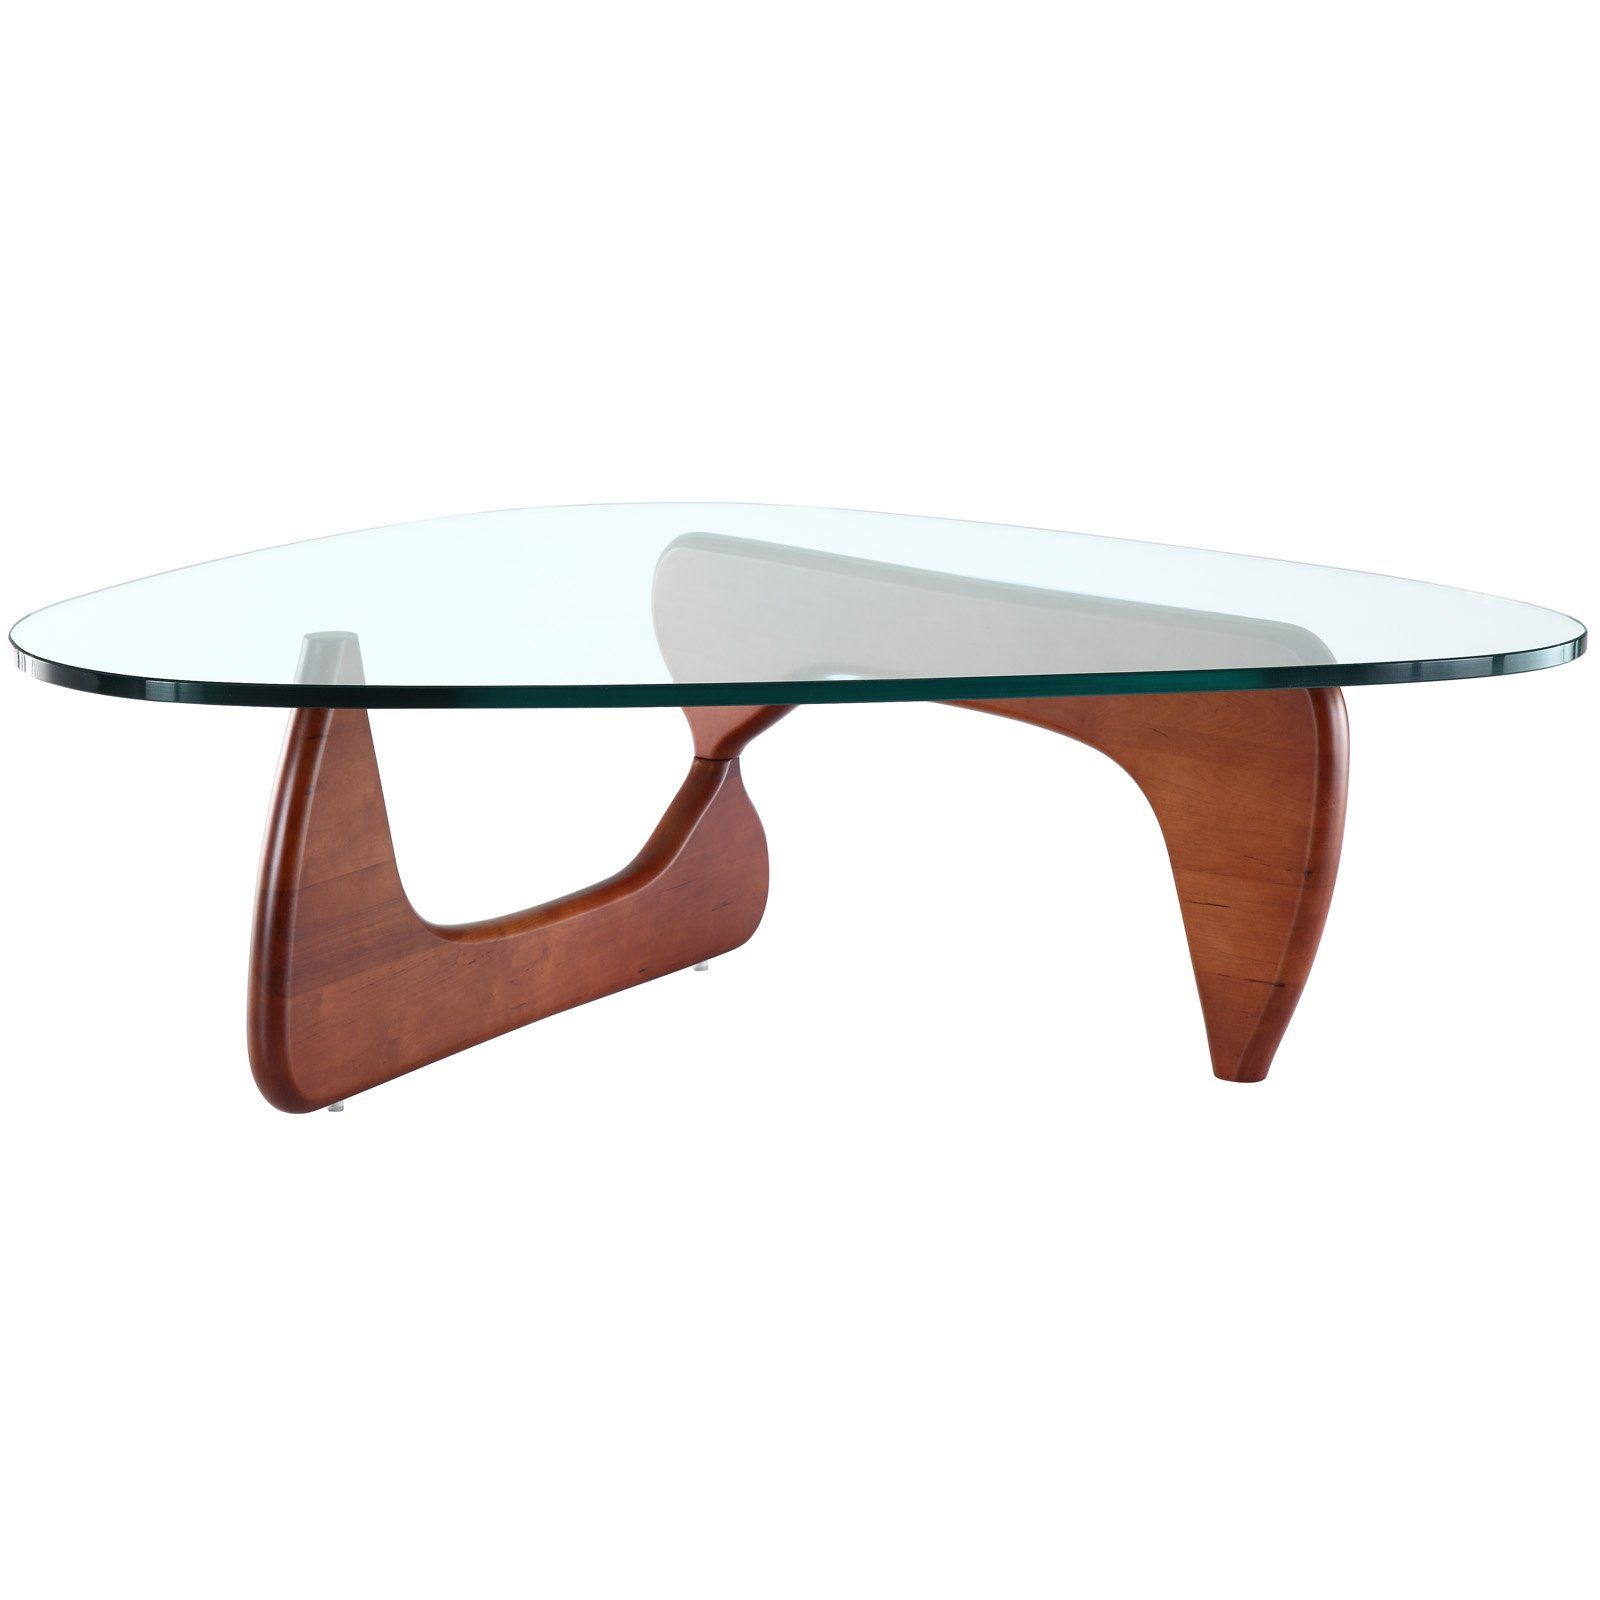 Triangle Coffee Table in Cherry Lake House Furniture